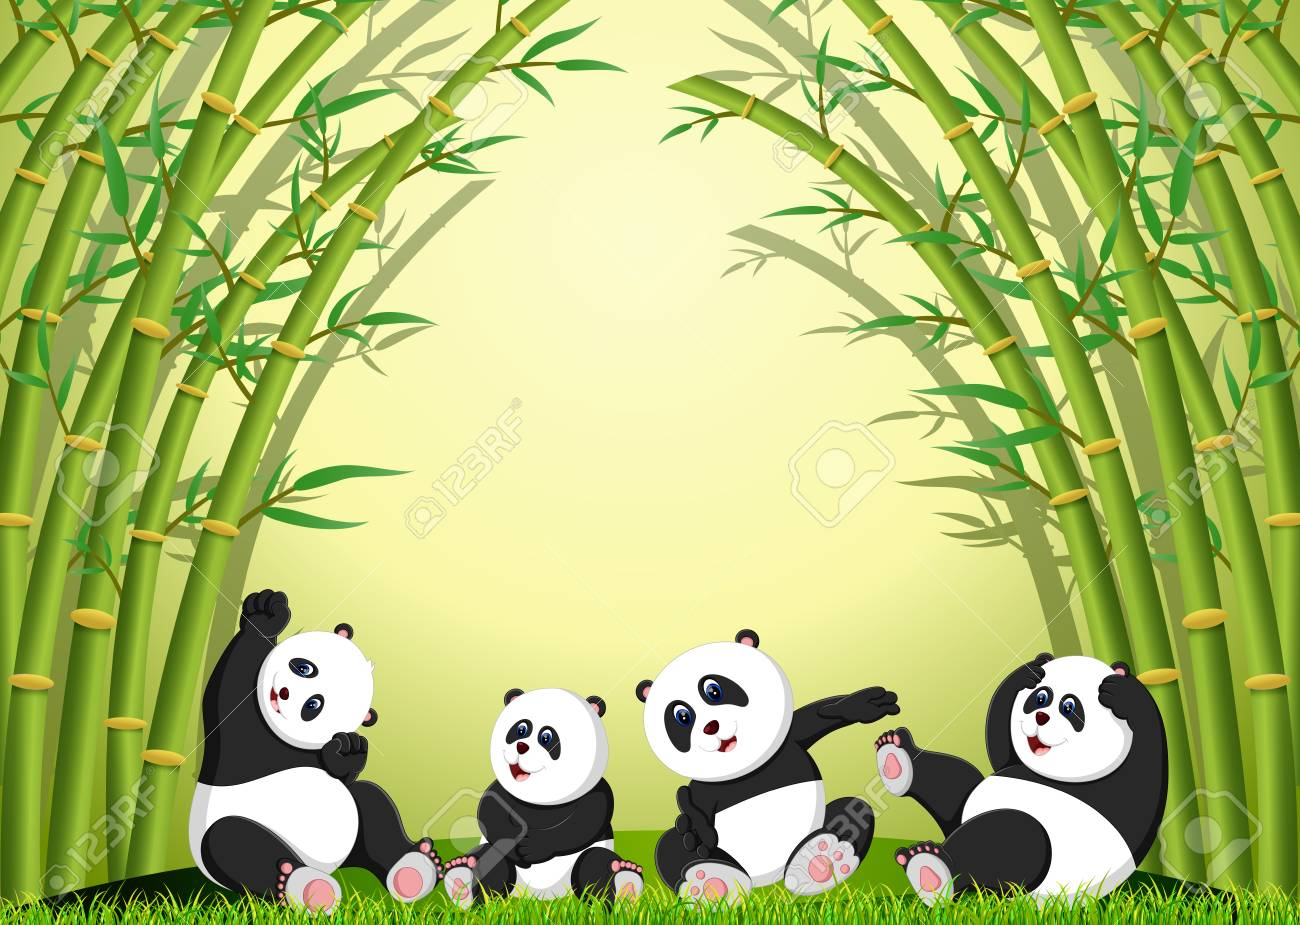 the panda action playing together under the bamboo - 108805722